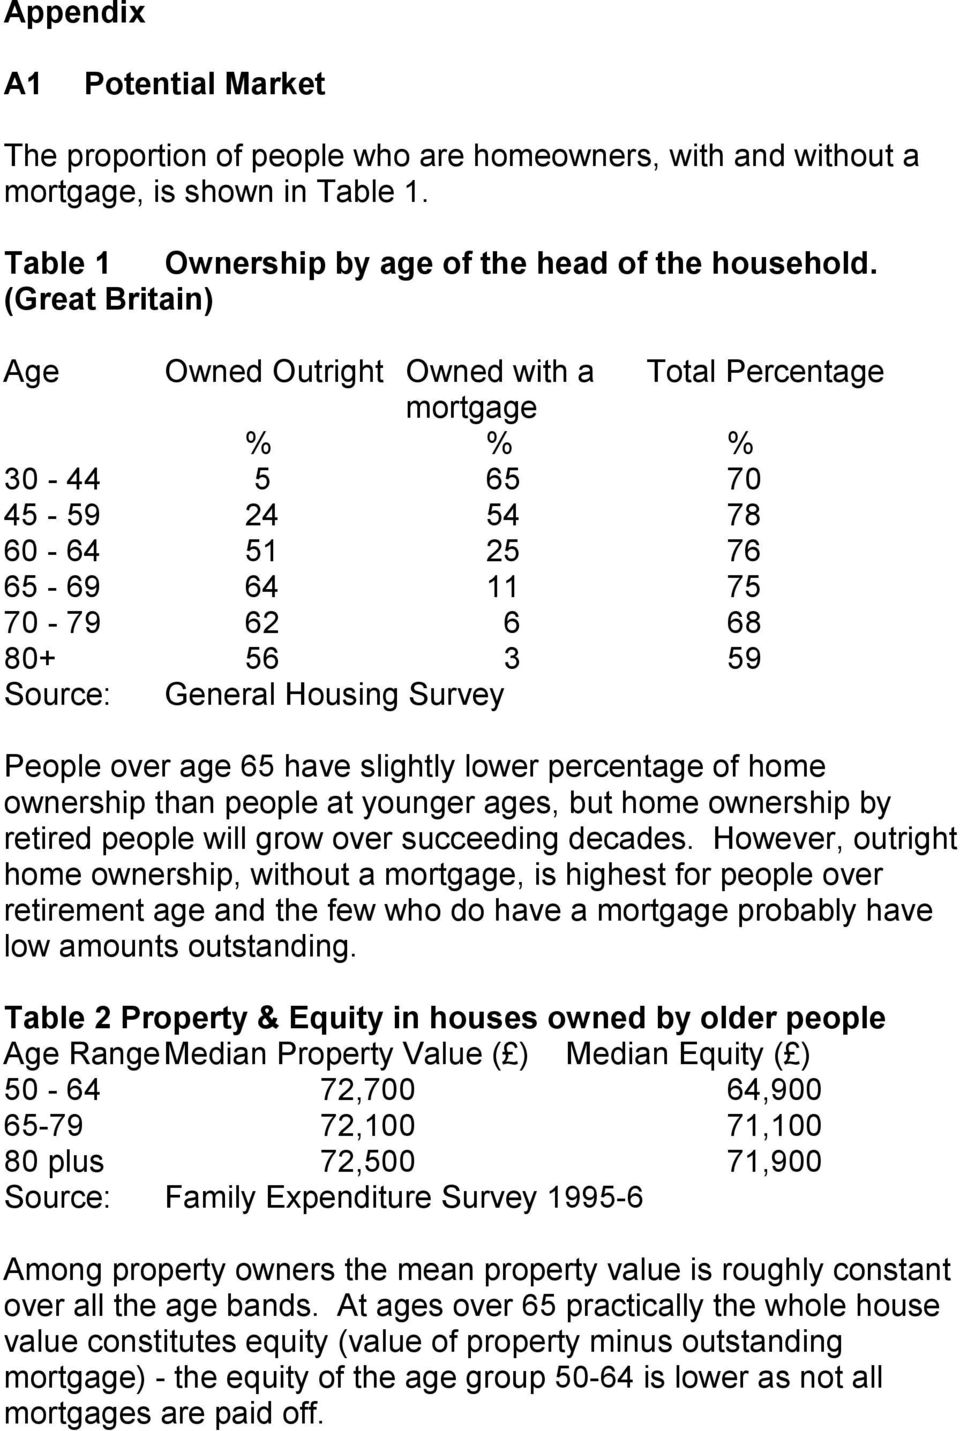 People over age 65 have slightly lower percentage of home ownership than people at younger ages, but home ownership by retired people will grow over succeeding decades.